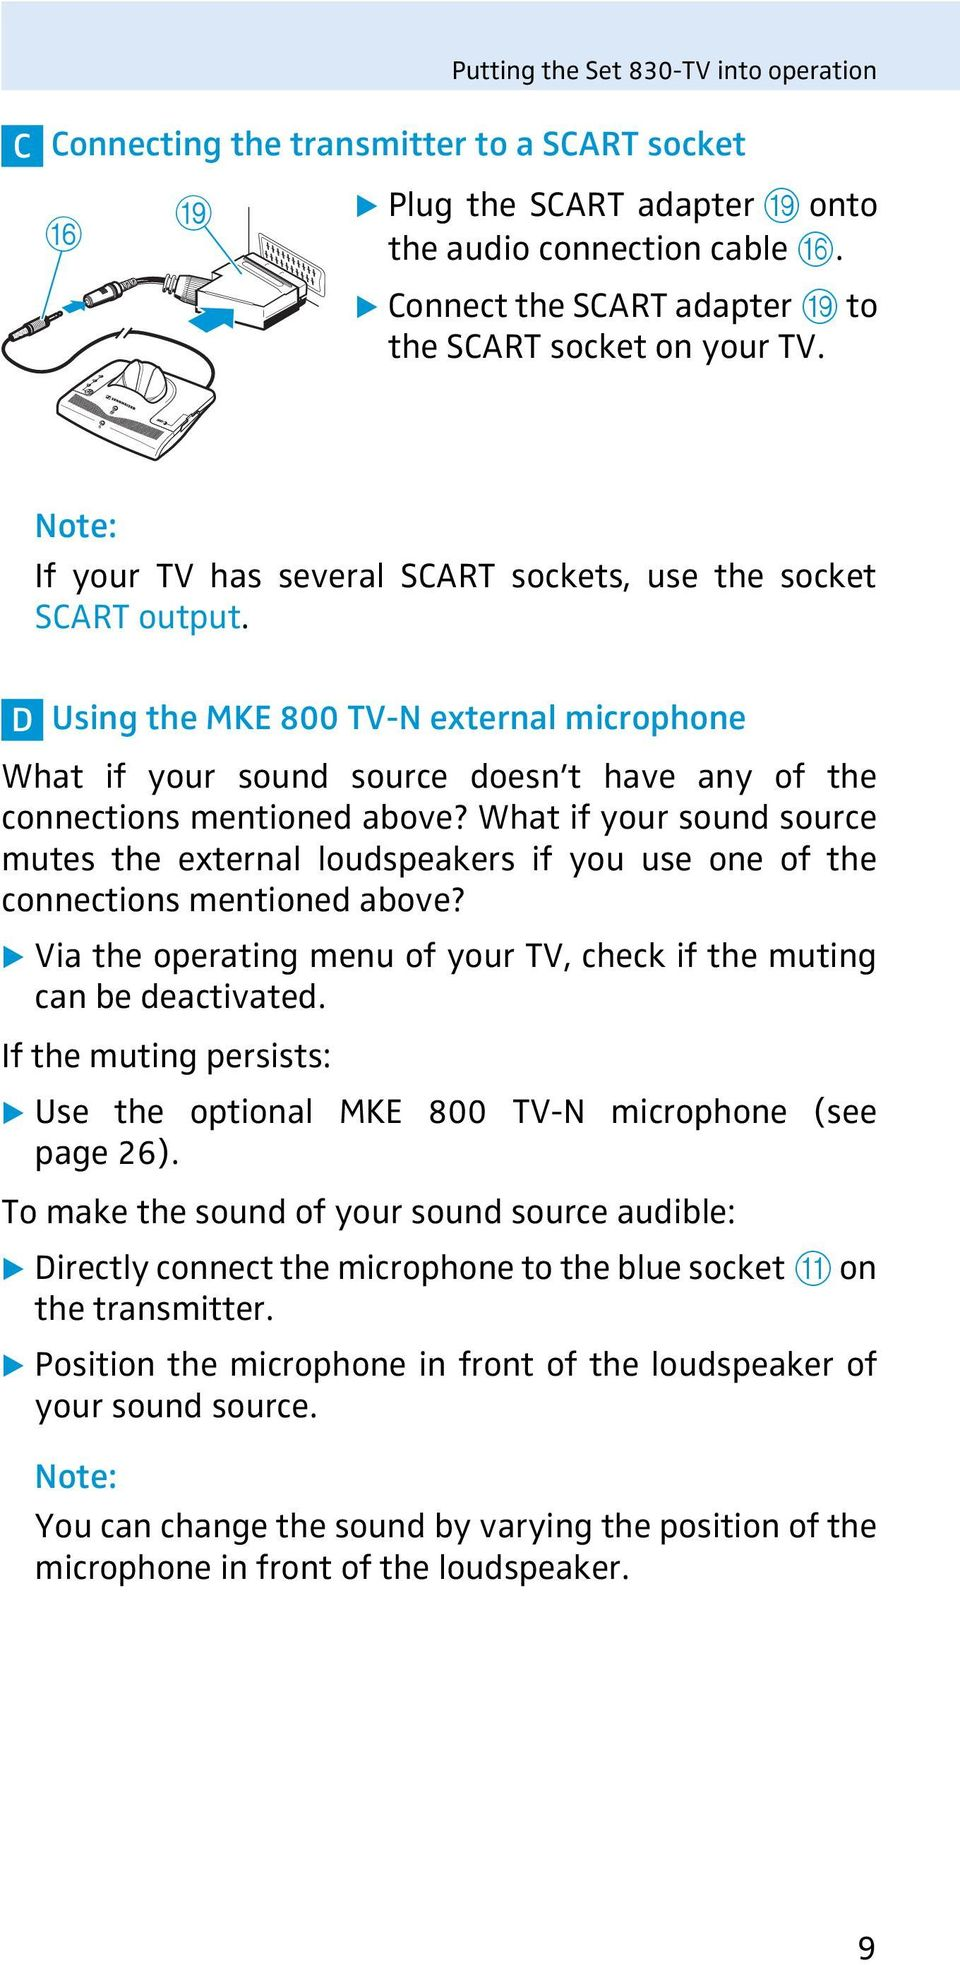 D Using the MKE 800 TV-N external microphone What if your sound source doesn t have any of the connections mentioned above?